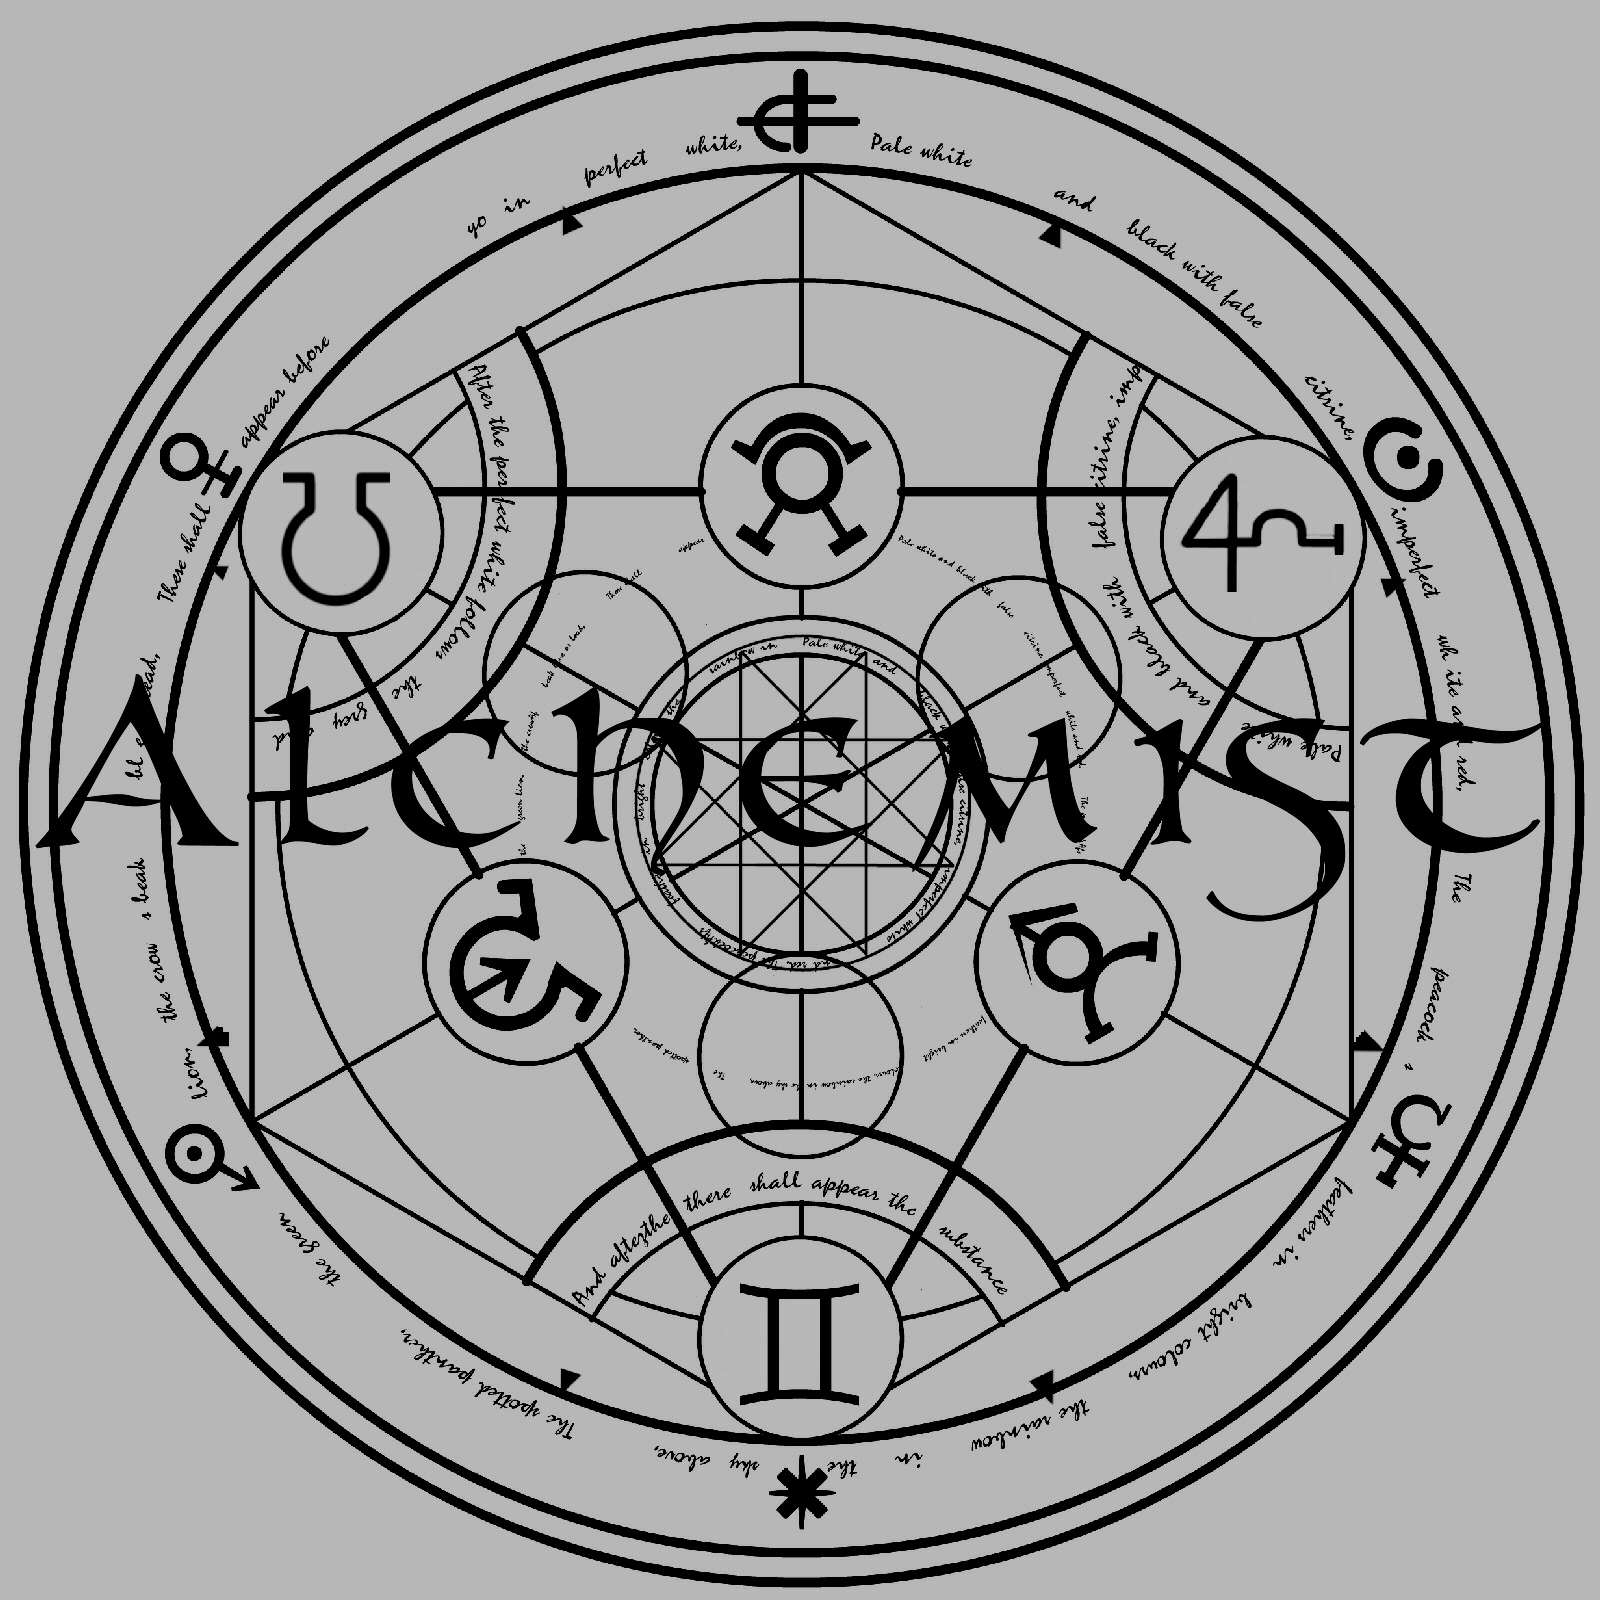 Alchemist Airkover Galactic Connection